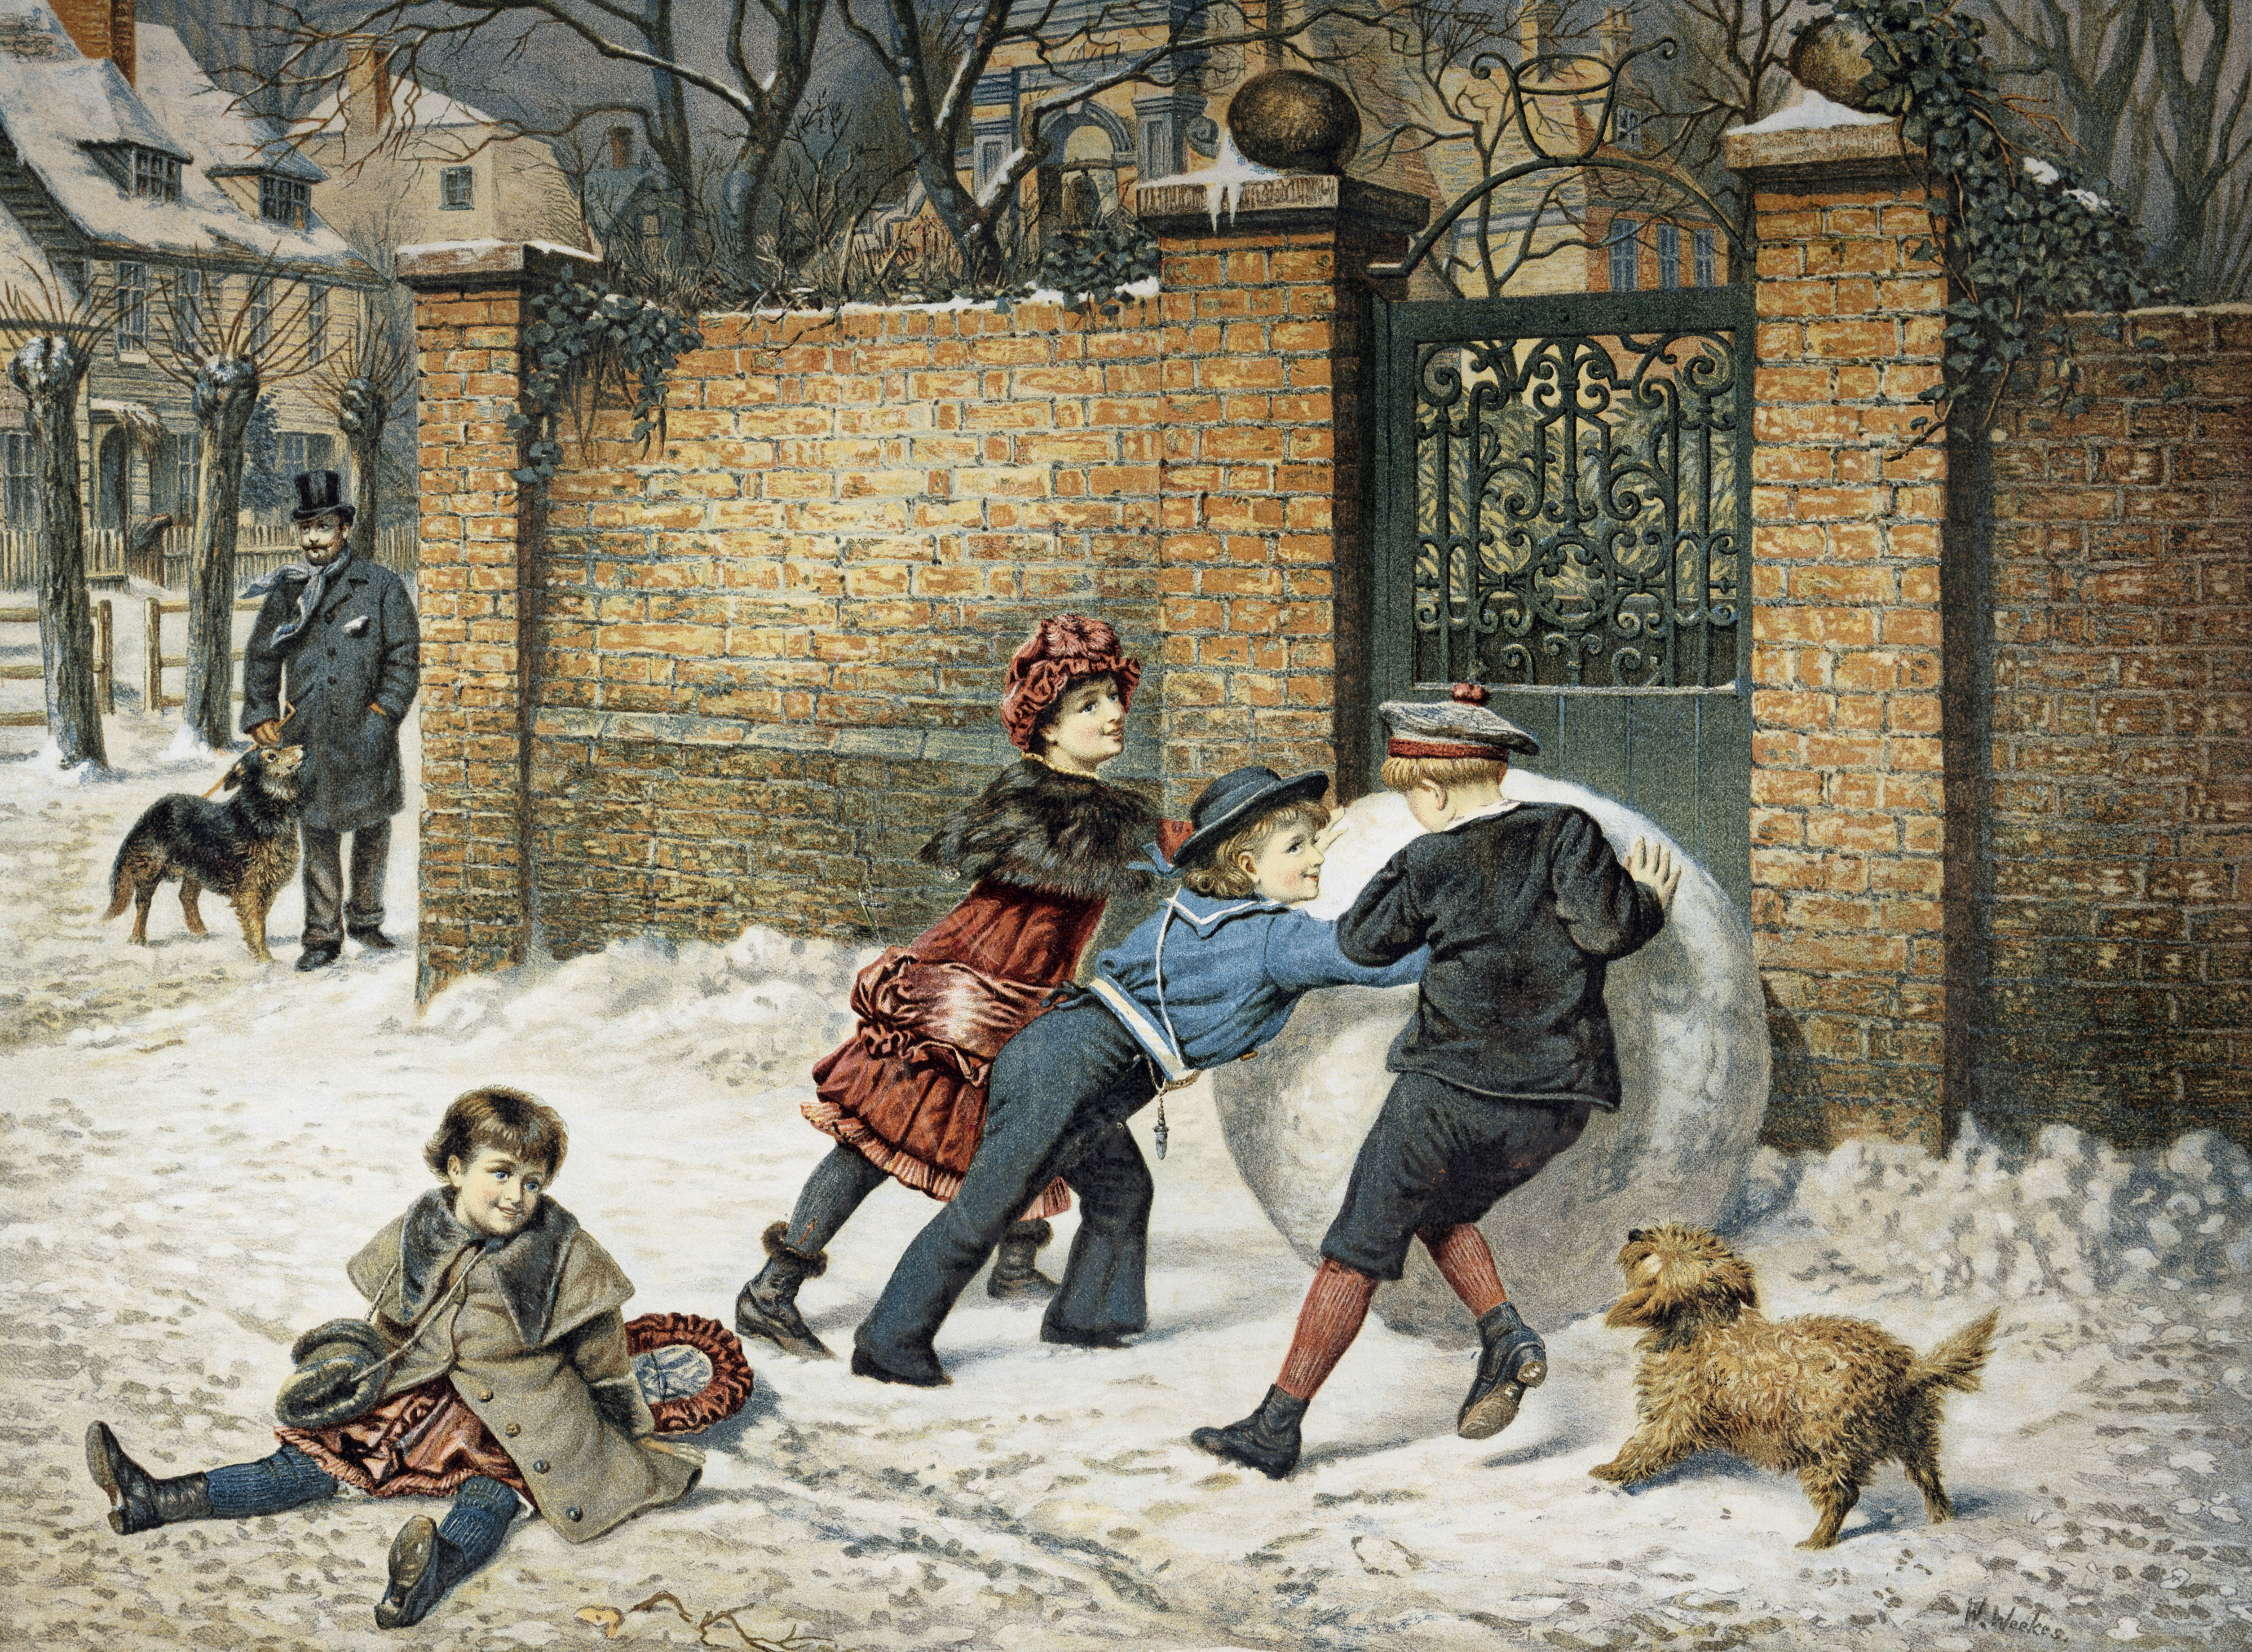 A painting sshowing children playing with a giant snowball.